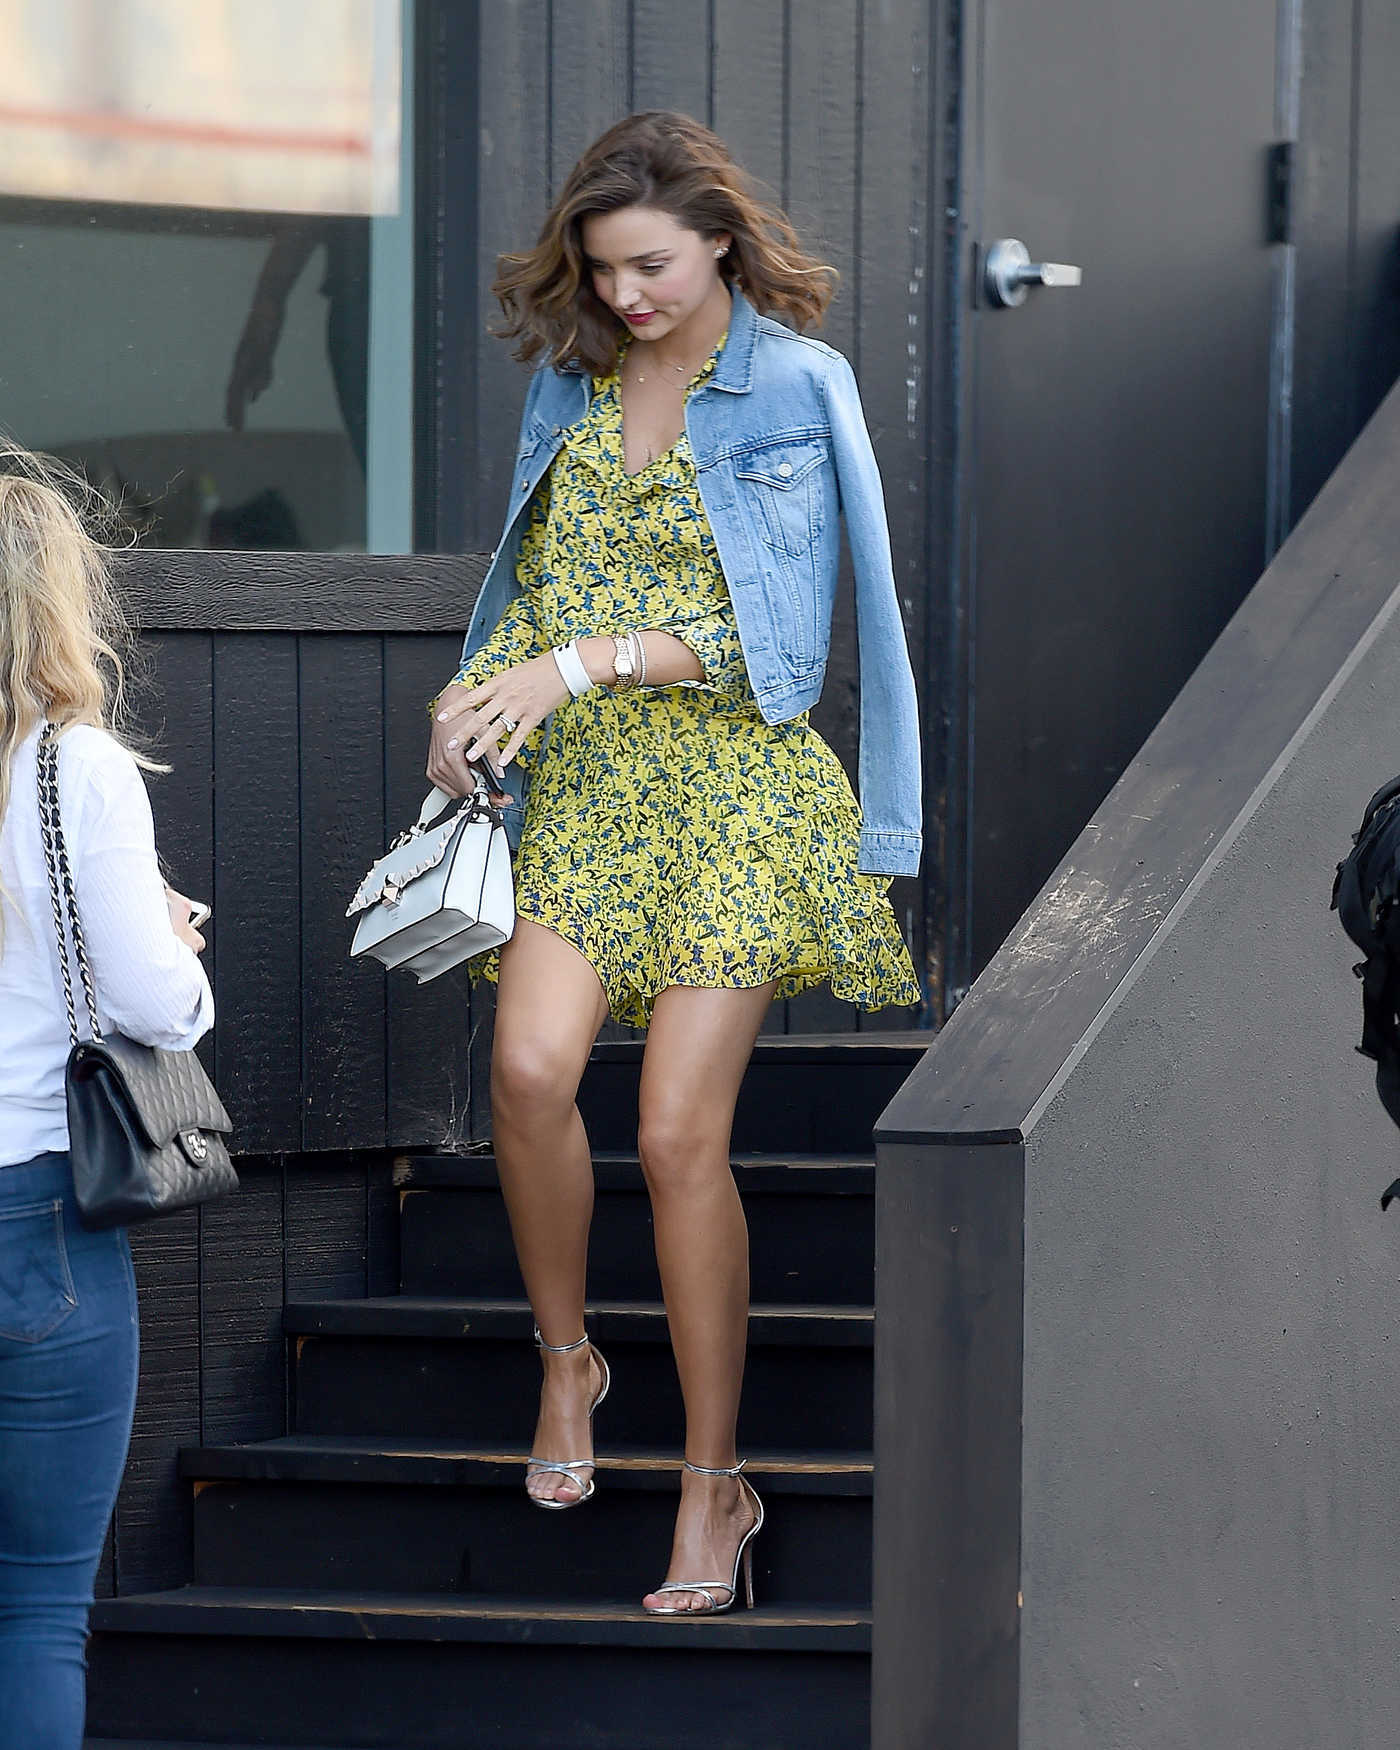 Miranda Kerr at the 34St Heliport in New York City 09/15/2017